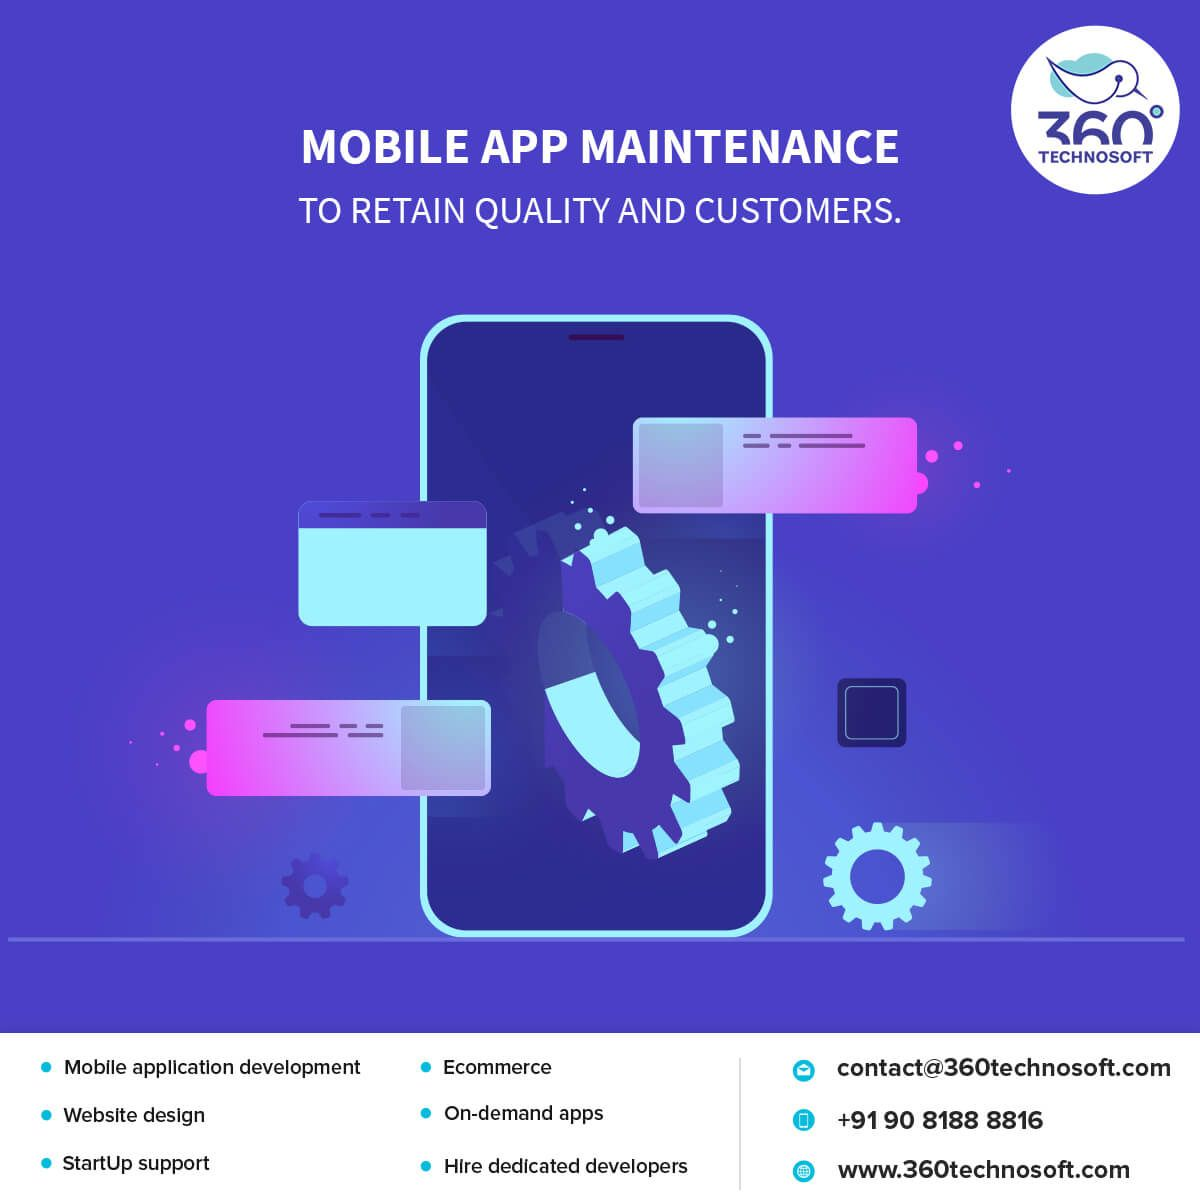 Mobile app maintenance is not just to make it work like